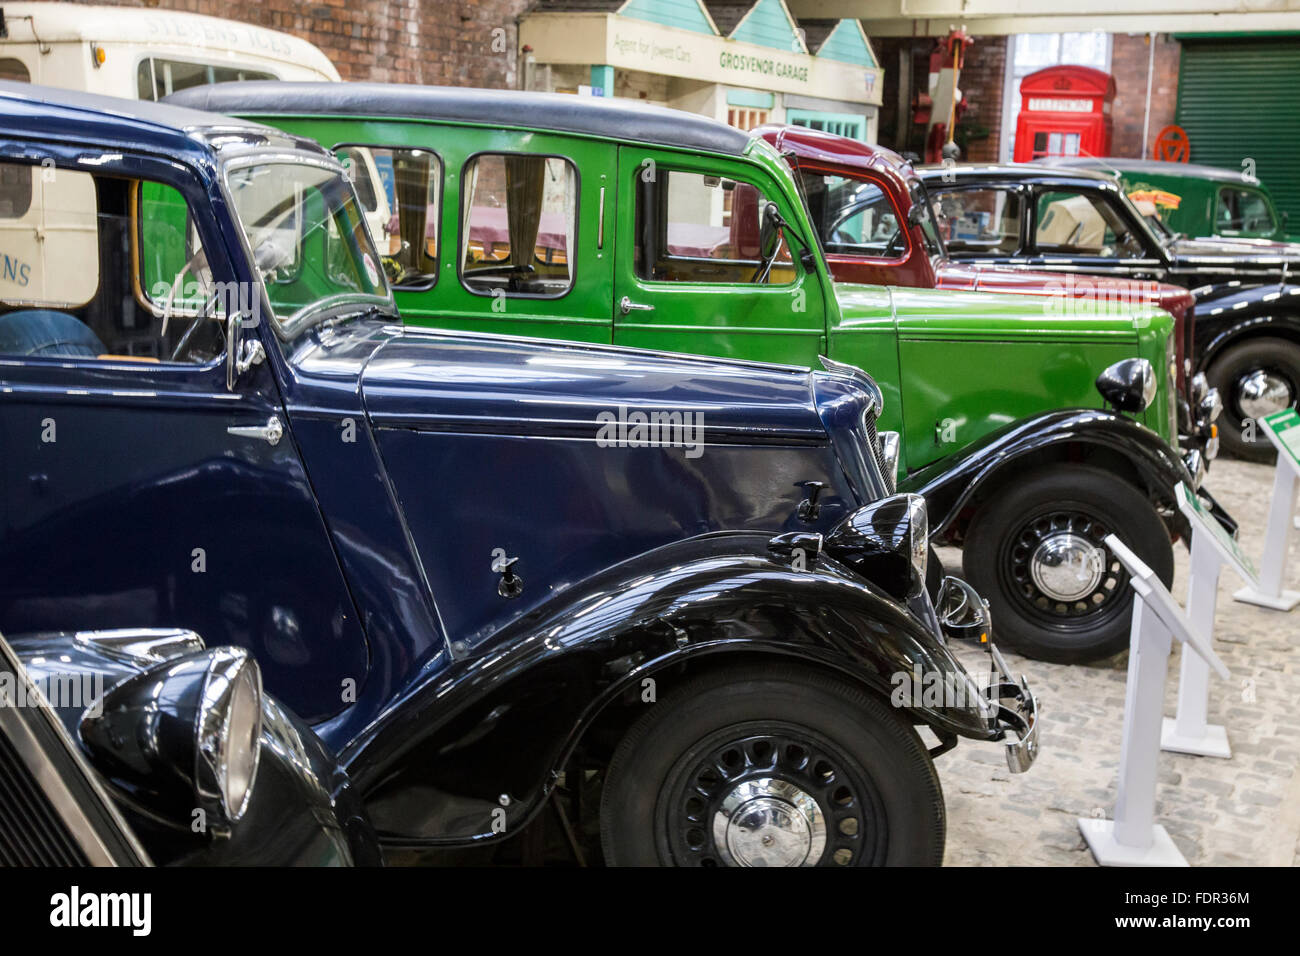 Jowett Cars And Other Vehicles On Display At Bradford Industrial